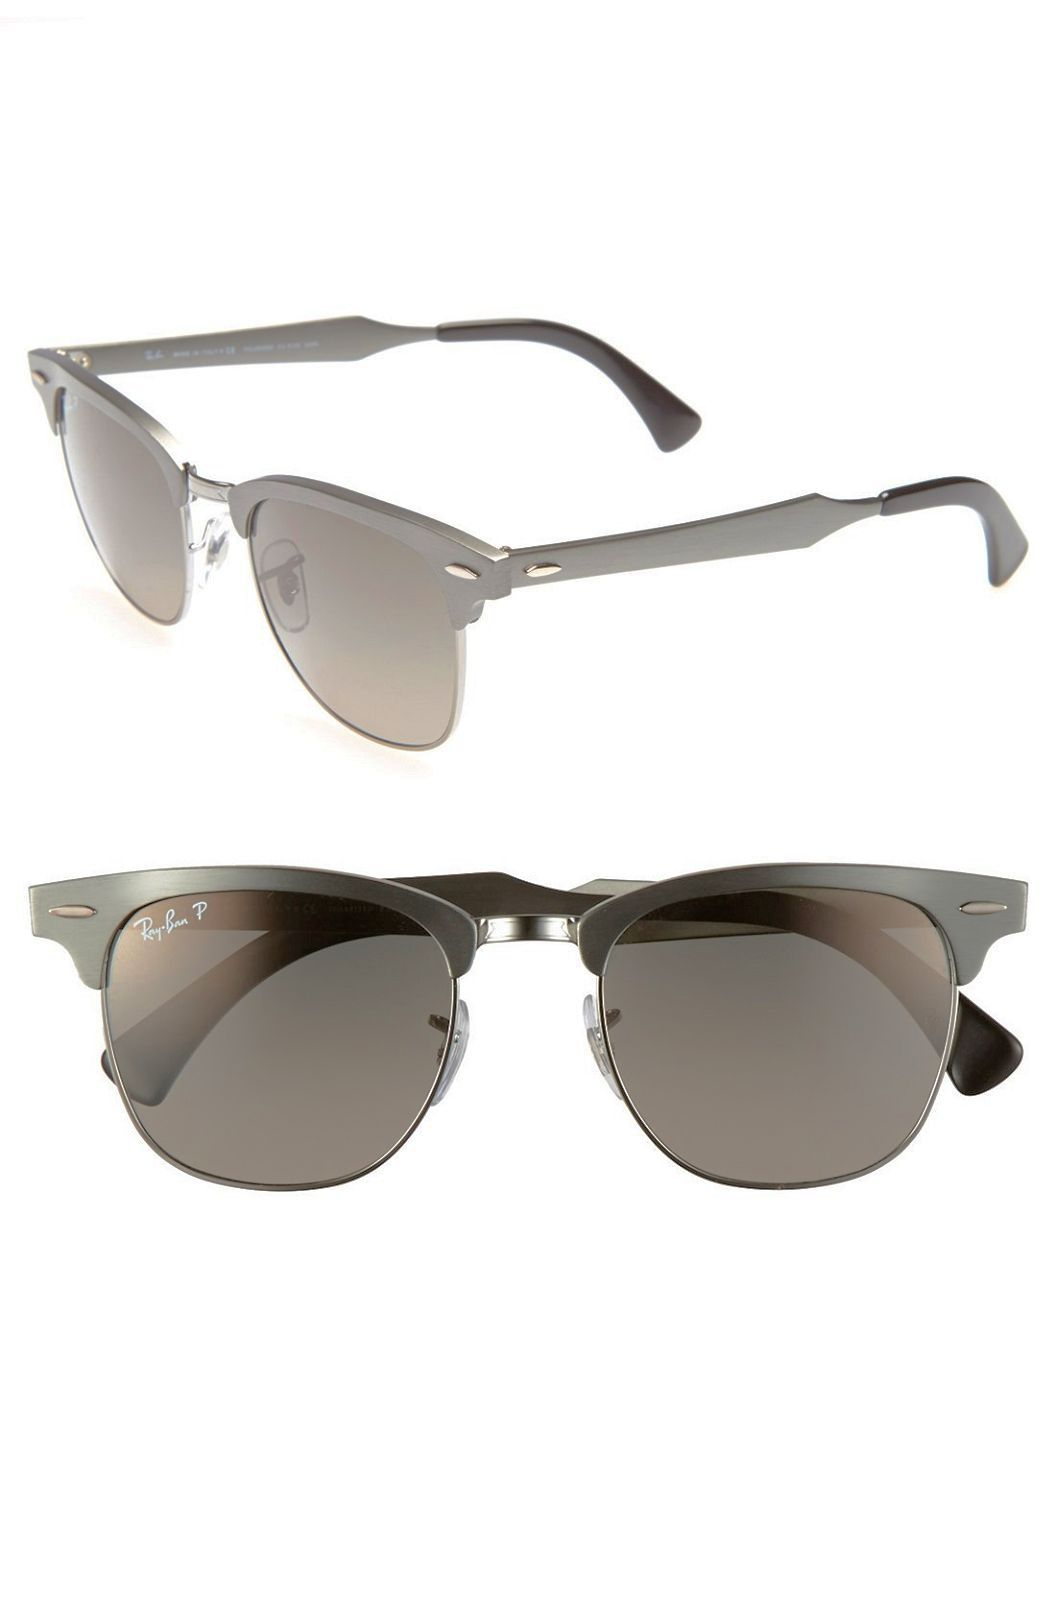 23a5213e81 7c928 d7fc8  where can i buy rb sunglasses on twitter. ray ban 9efd9 622ef